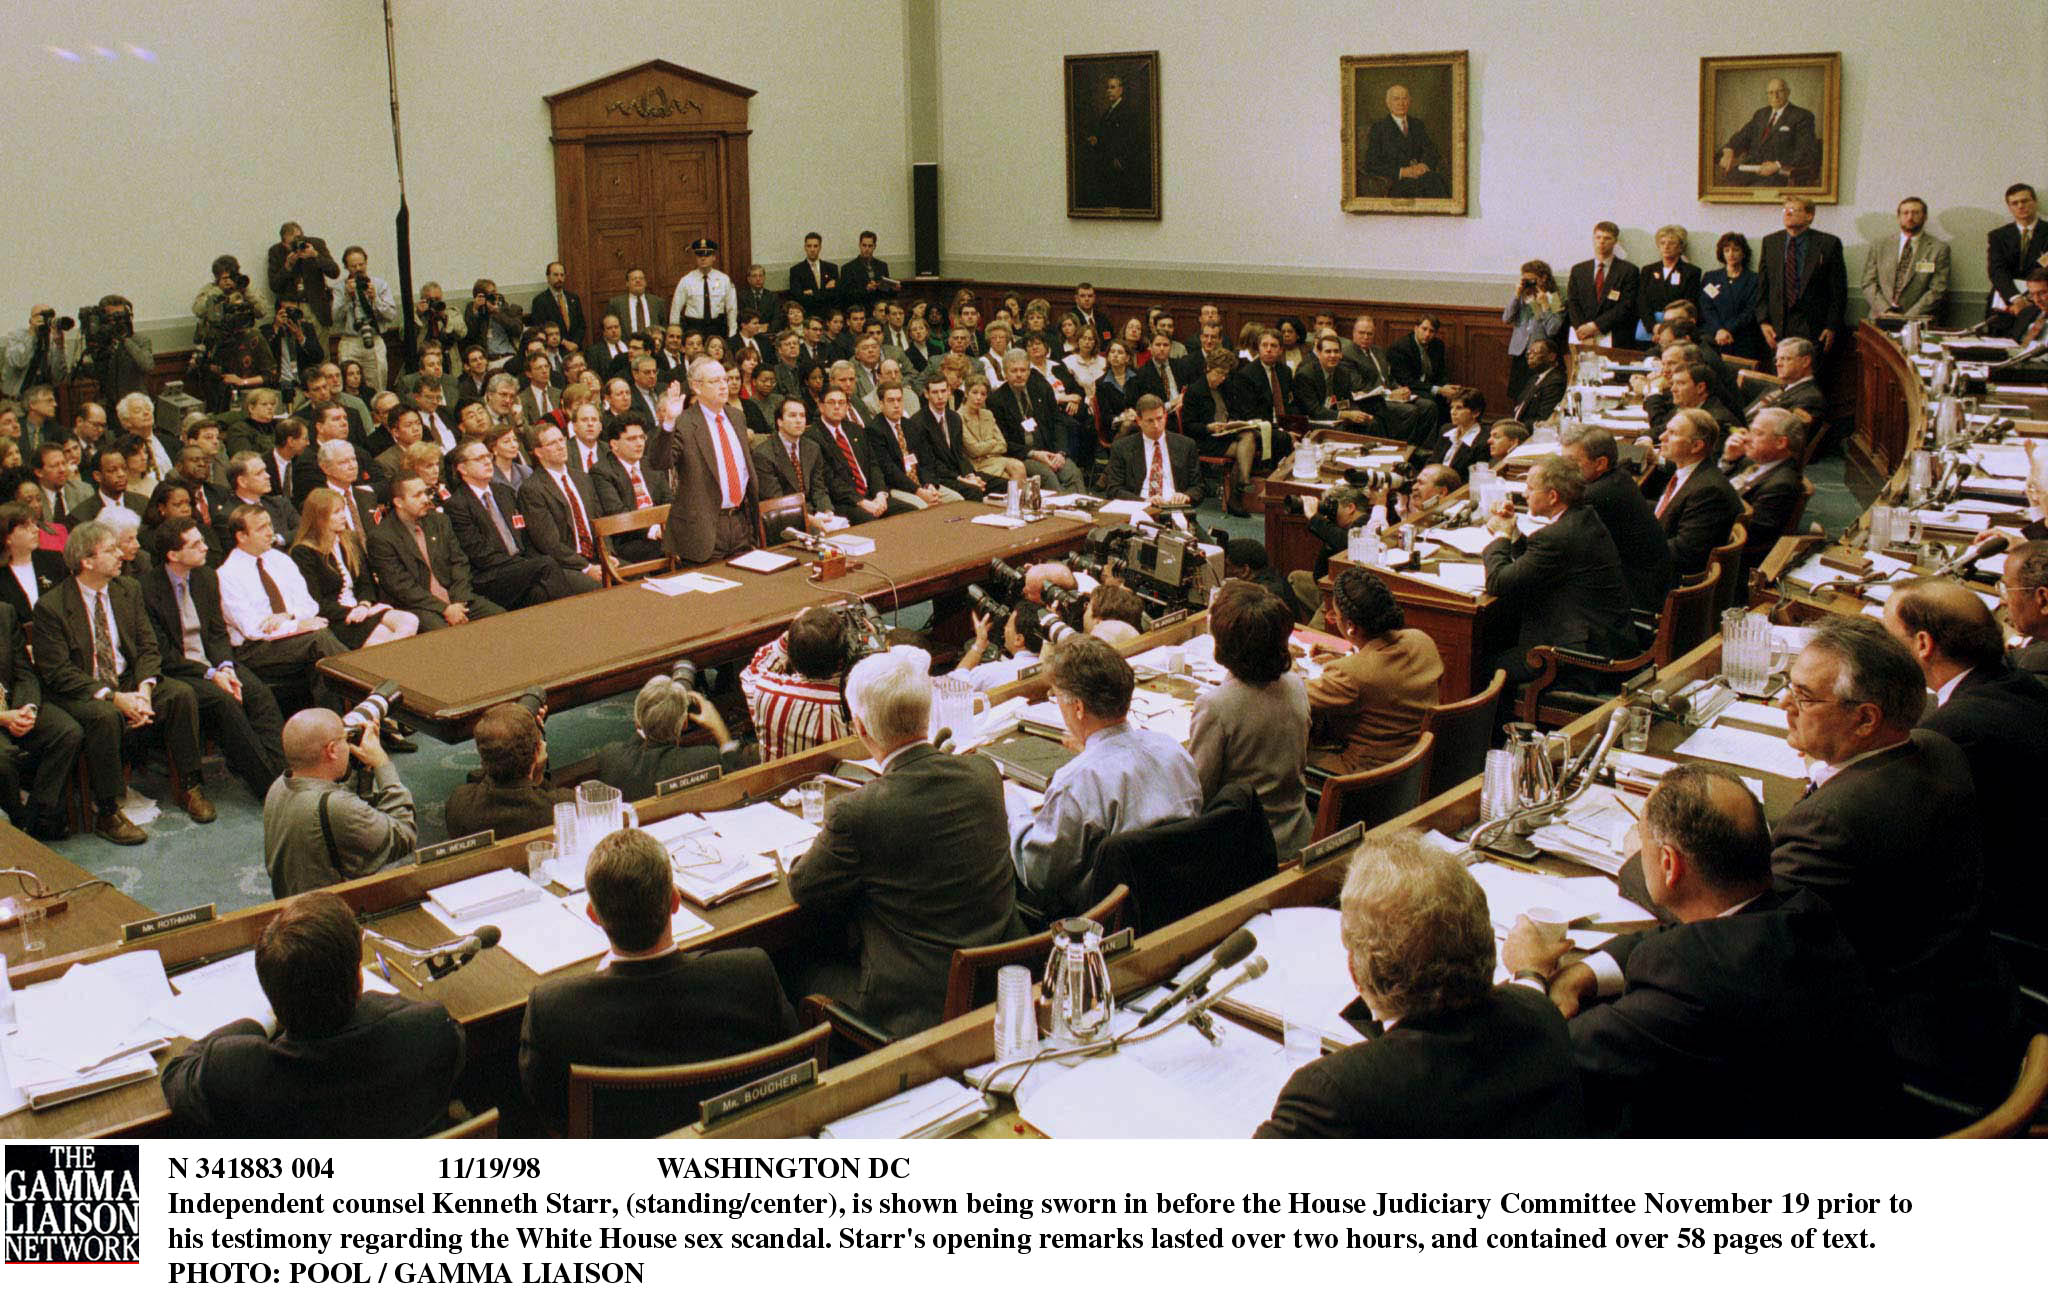 N 341883 004 11/19/98 Washington Dc Independent Counsel Kenneth Starr, (Standing/Center), Is Shown Being Sworn In Before The House Judiciary Committee November 19 Prior To His Testimony Regarding The White House Sex Scandal. Starr's Opening Remarks Lasted Over Two Hours, And Contained Over 58 Pages Of Text (Photo By Pool/Getty Images)